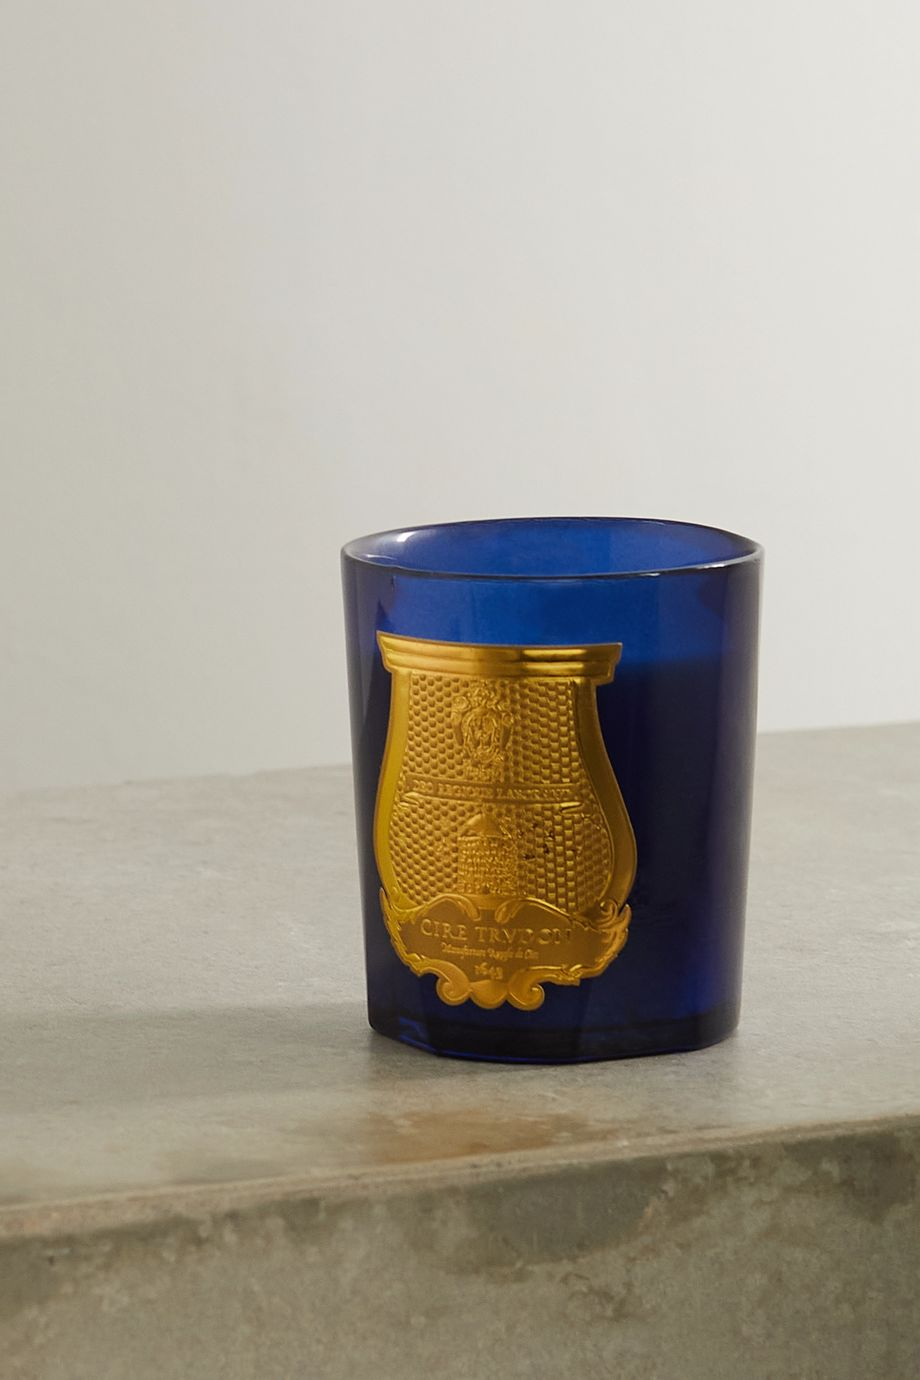 Cire Trudon Salta scented candle, 270g